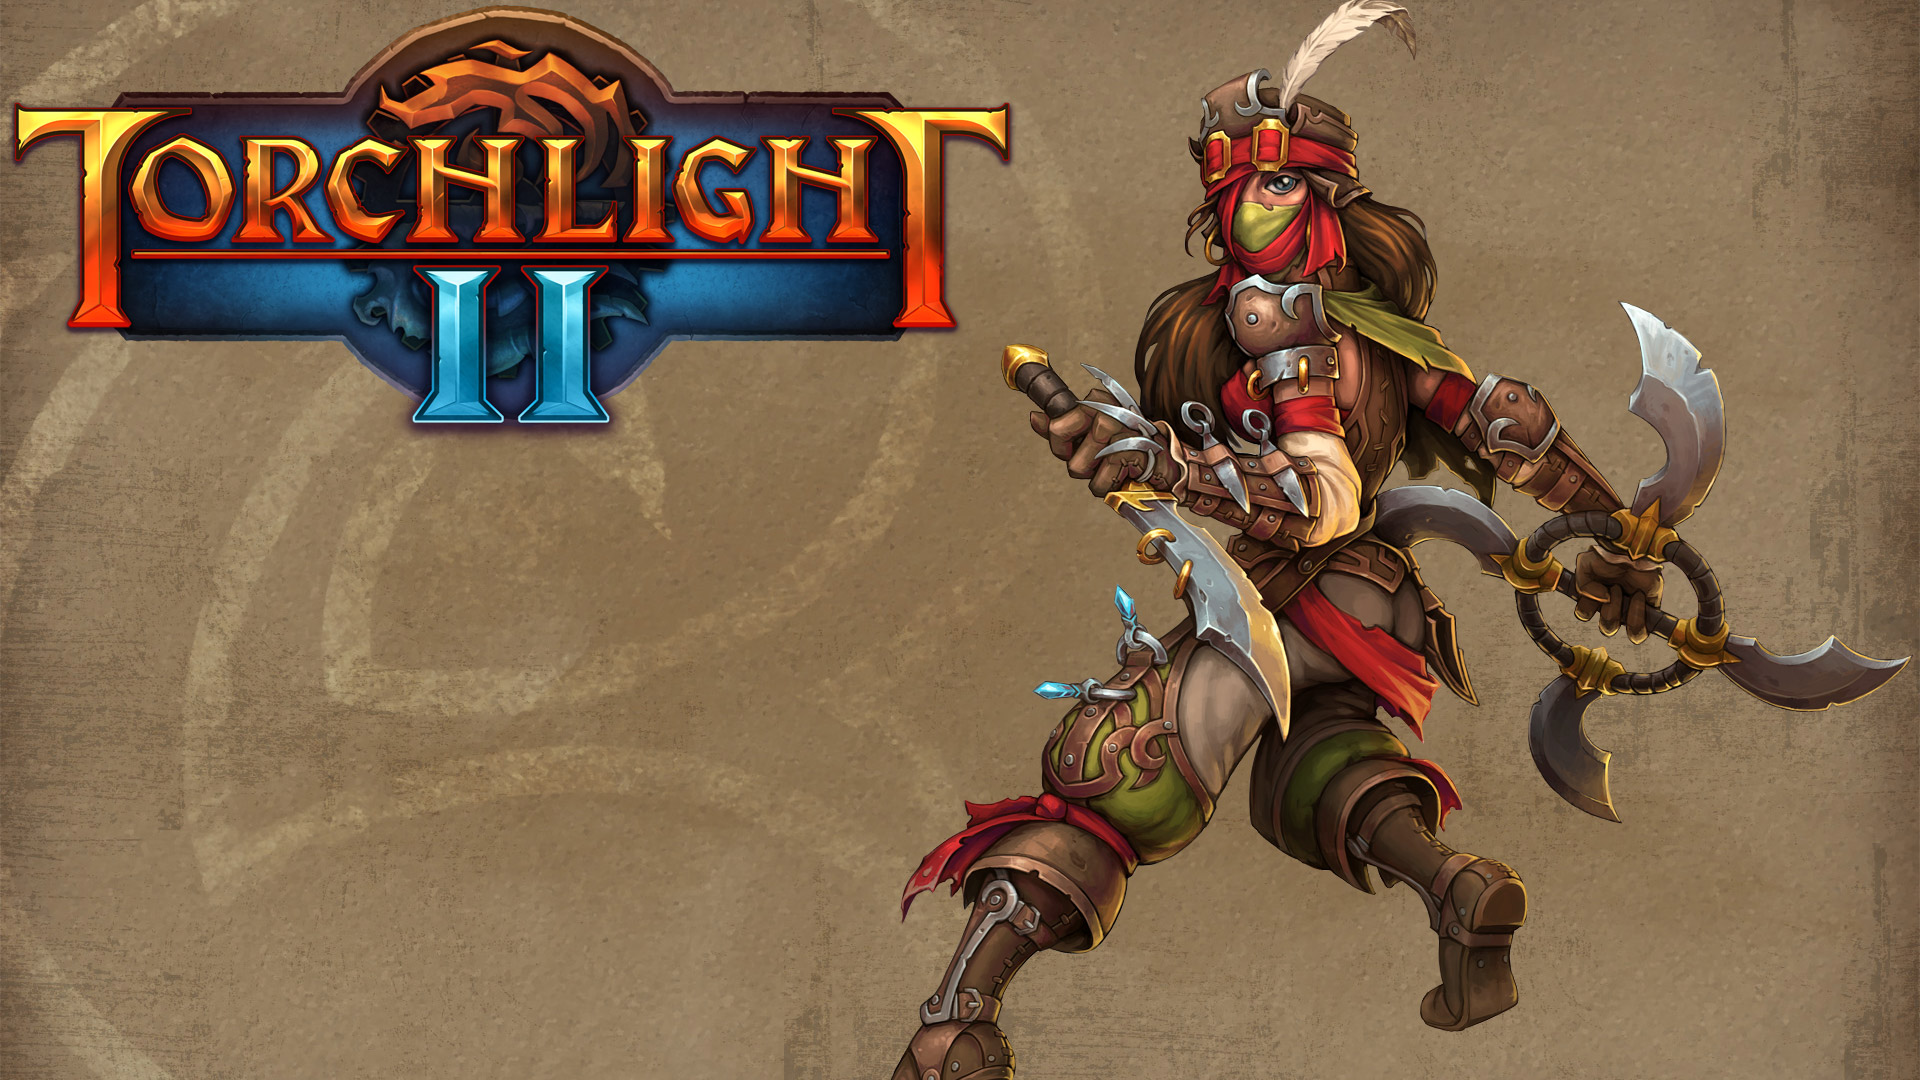 Free Torchlight II Wallpaper in 1920x1080